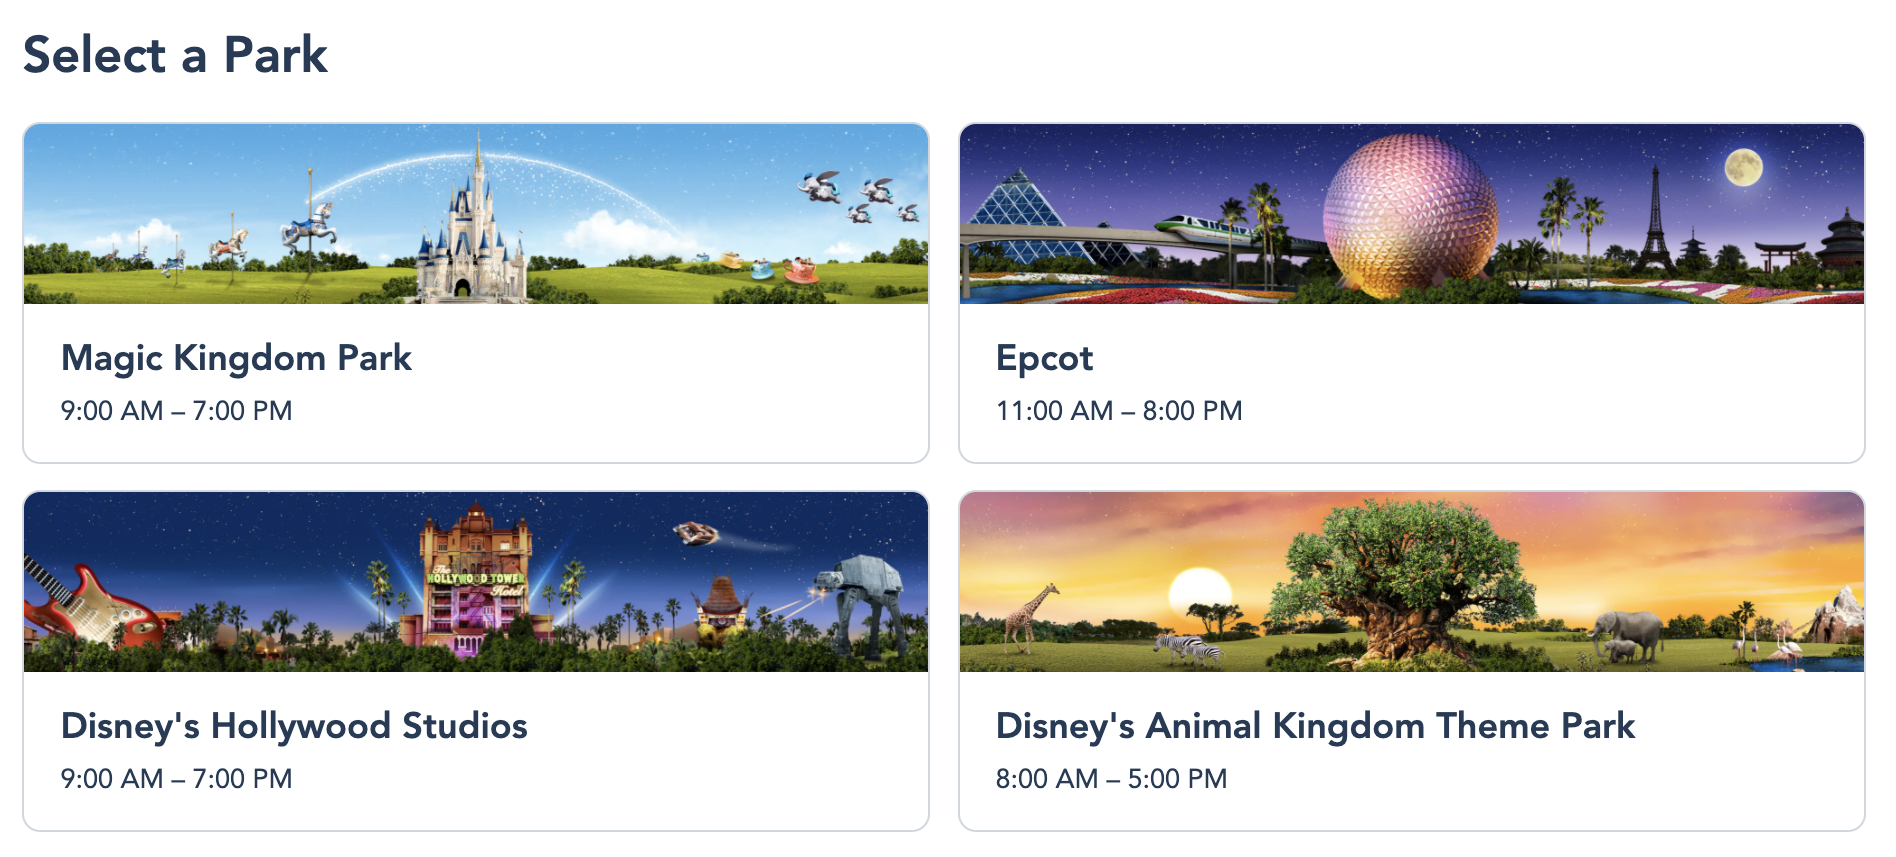 Disney's Park Pass Reservations Have Been Extended